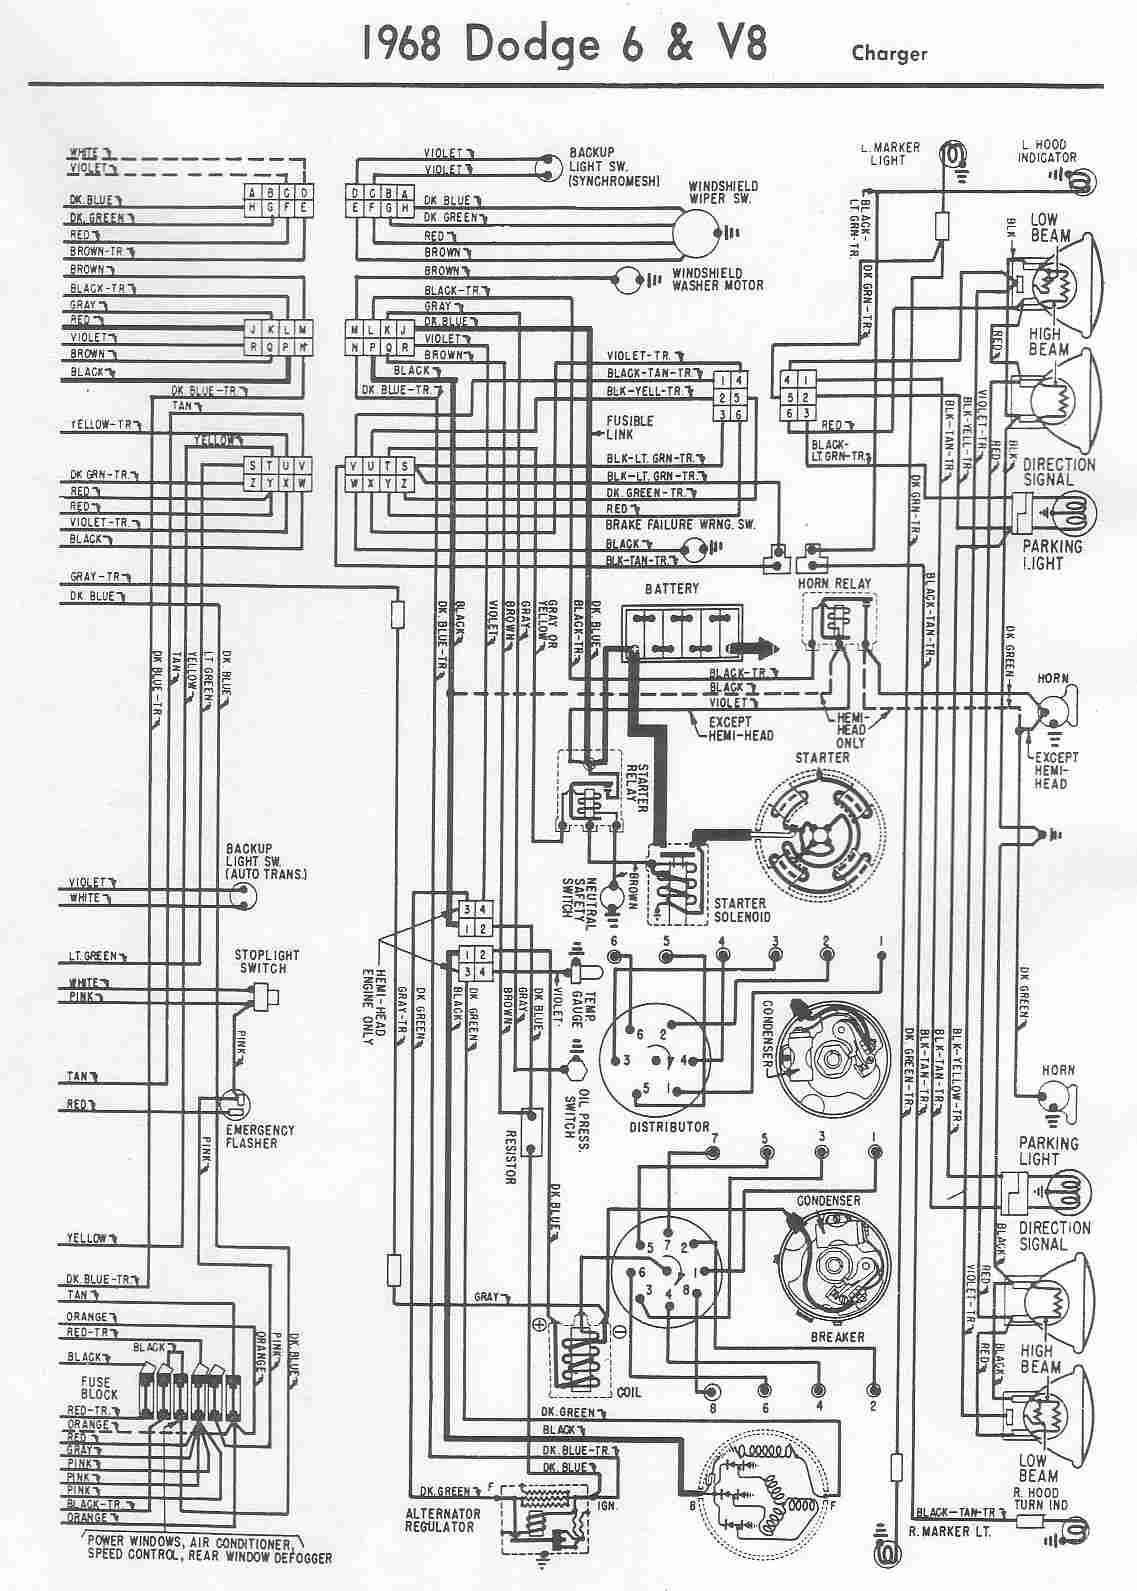 69 Coronet Wiring Diagram Library John Deere 6400 Fuse 1972 Duster Opinions About U2022